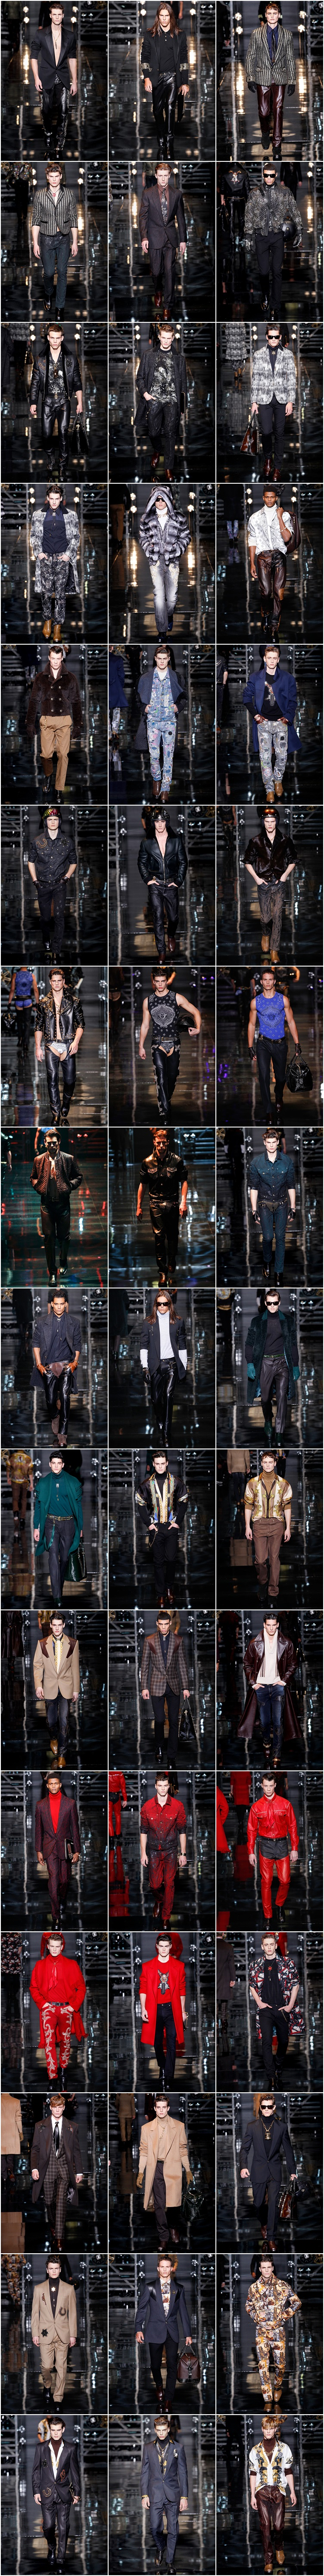 versace-men-fall-winter-2014-collection-fashion4addicts.com